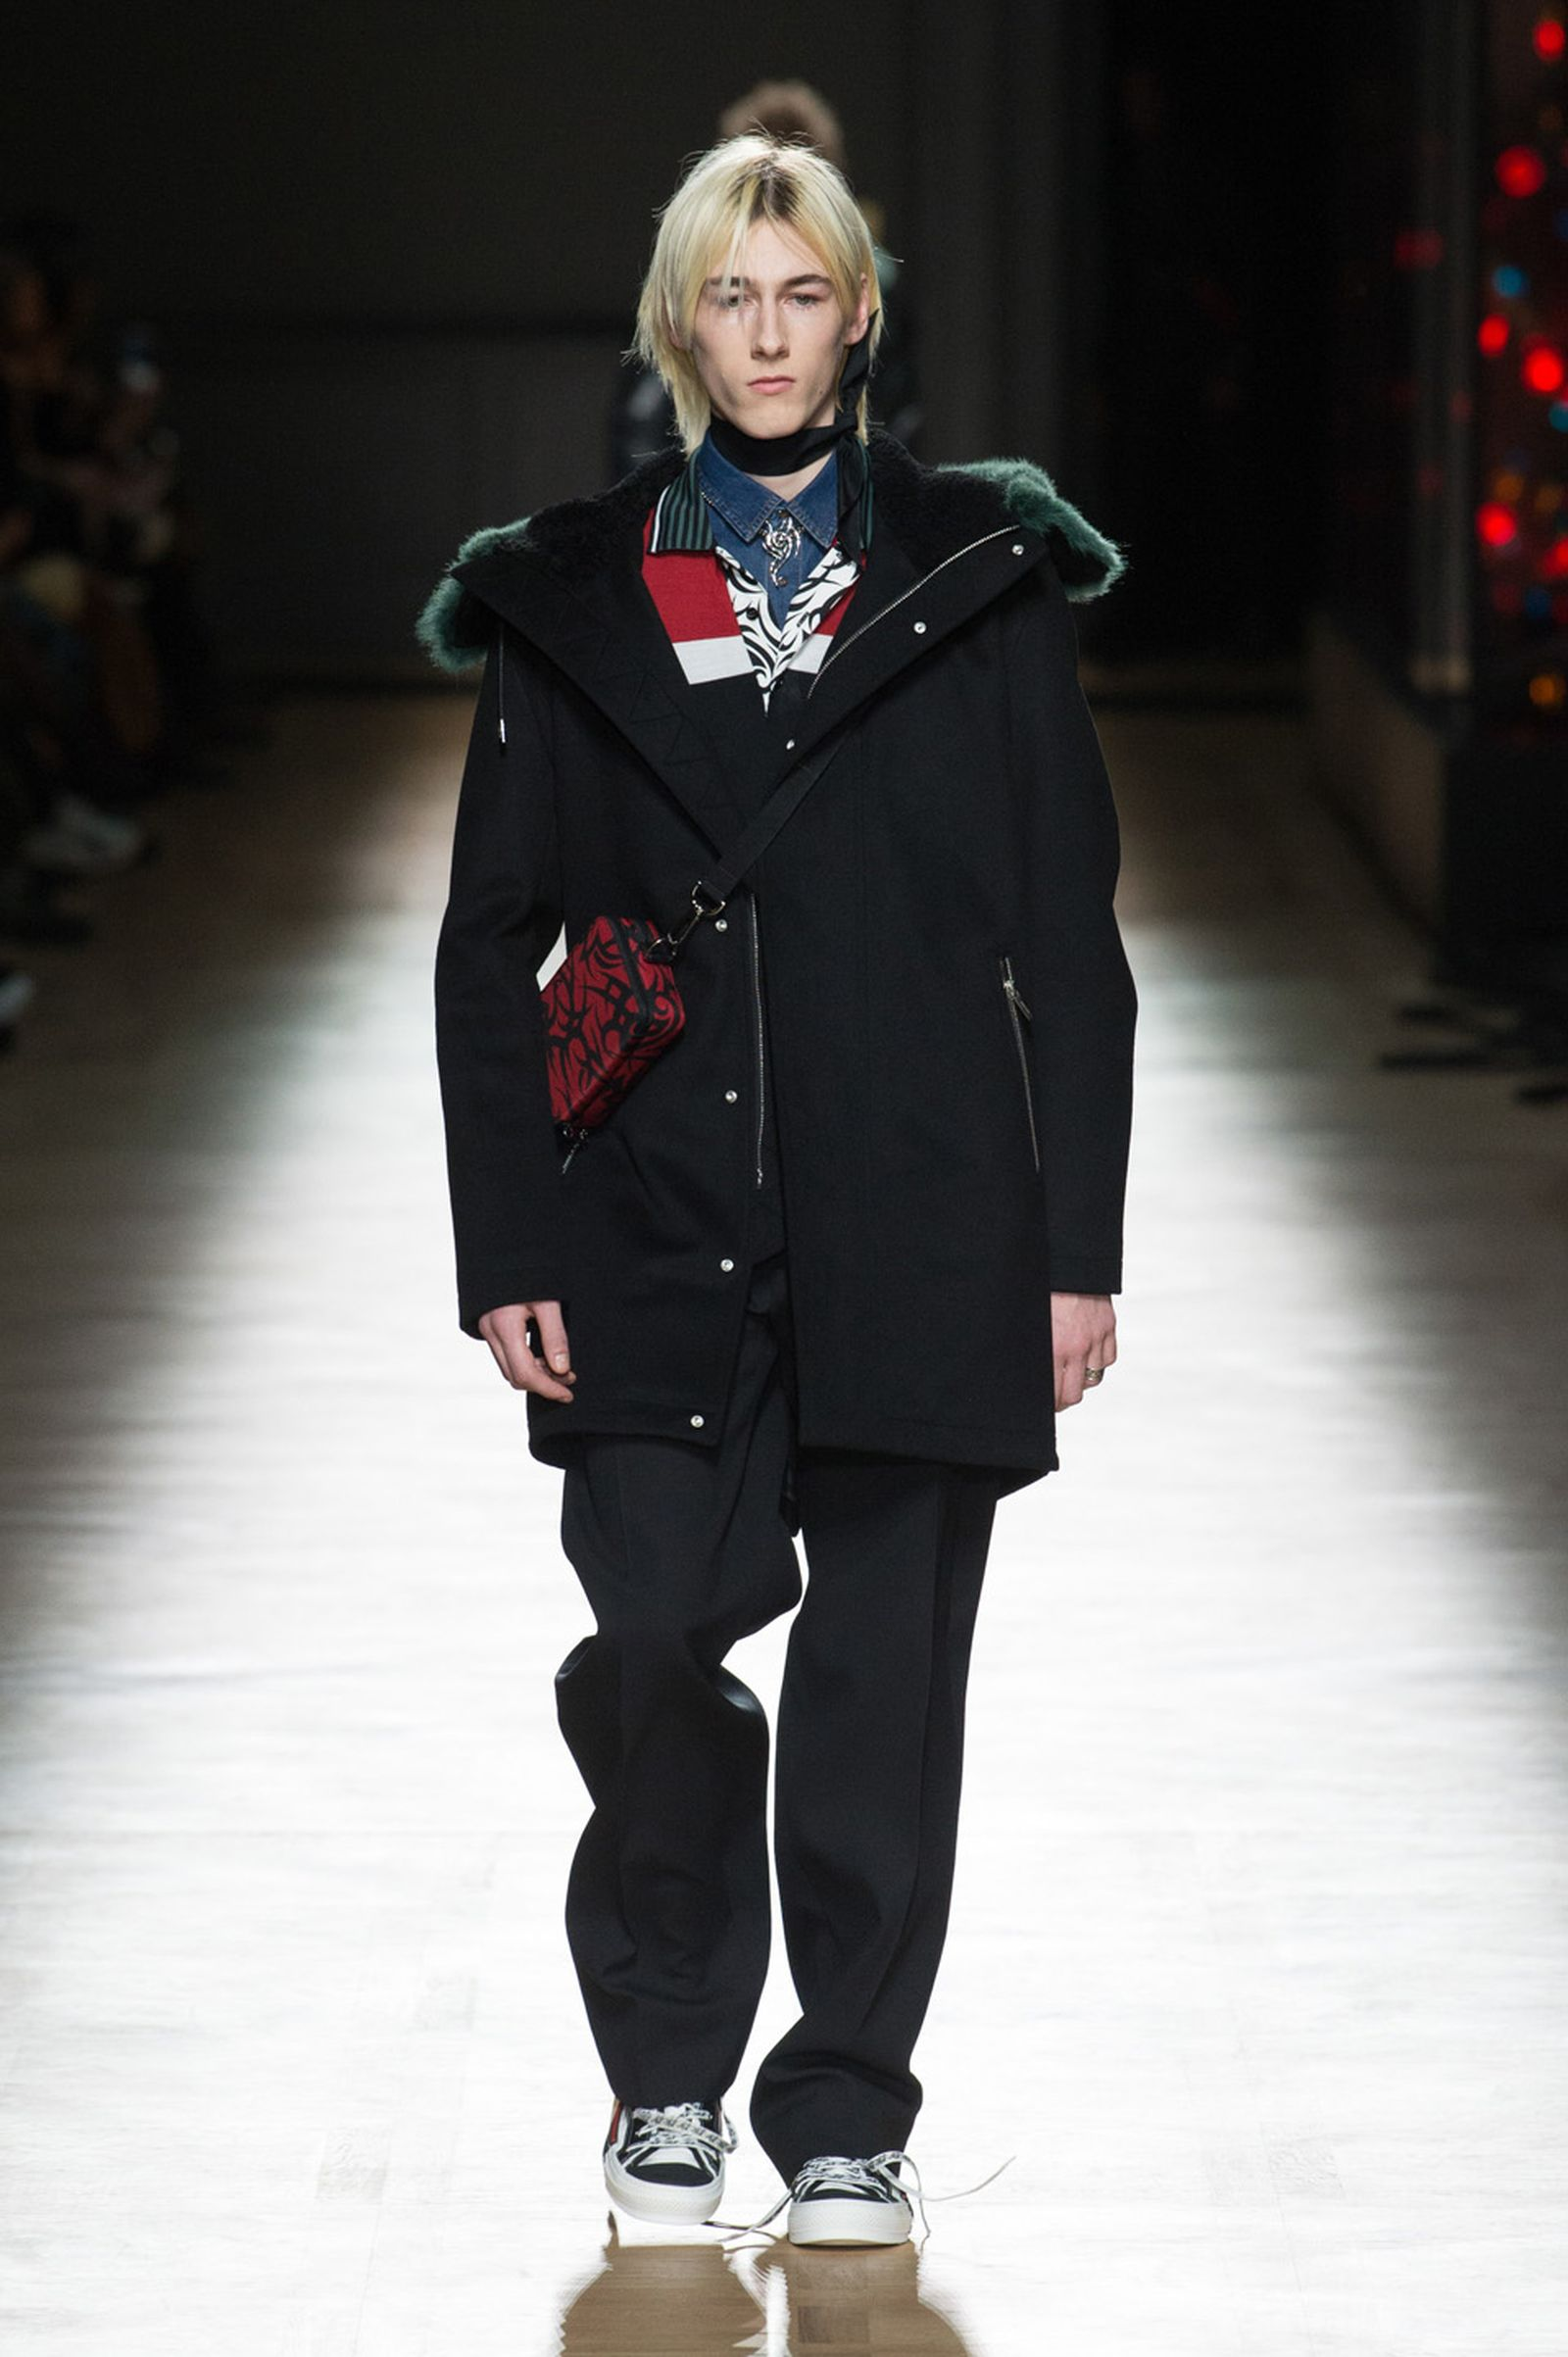 DIOR HOMME WINTER 18 19 BY PATRICE STABLE look21 Fall/WInter 2018 runway